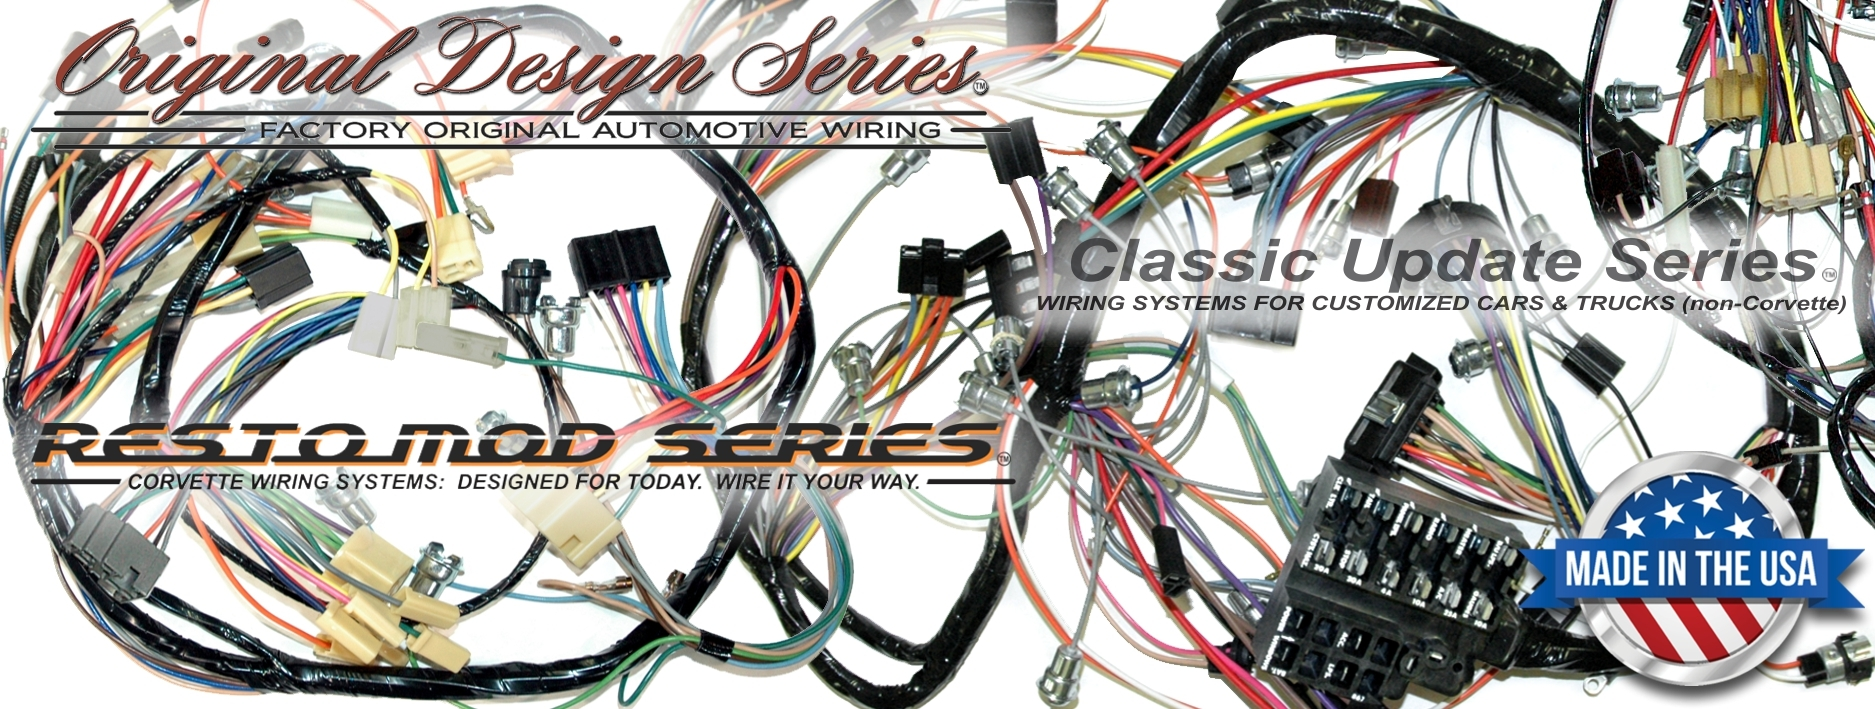 oem jeep wiring harness great installation of wiring diagram \u2022 Jeep to Chevy Wiring Harness exact oem reproduction wiring harnesses and restomod wiring systems rh lectriclimited com cen tech wiring